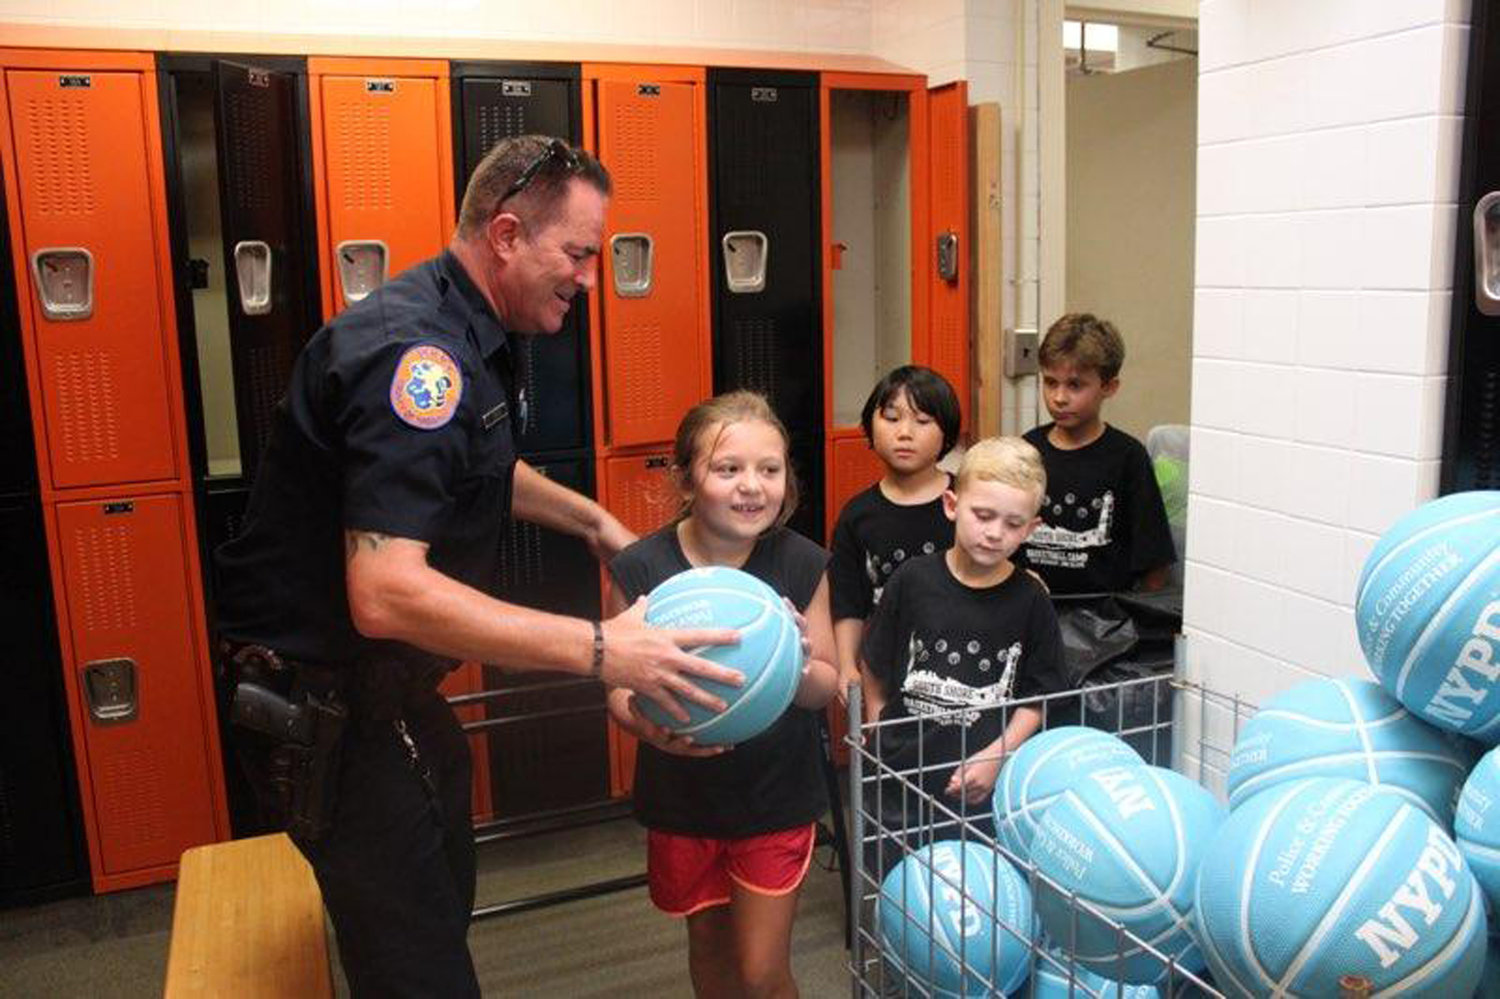 Nassau County Police Department Officer Gary Zima handed out the balls to the campers.